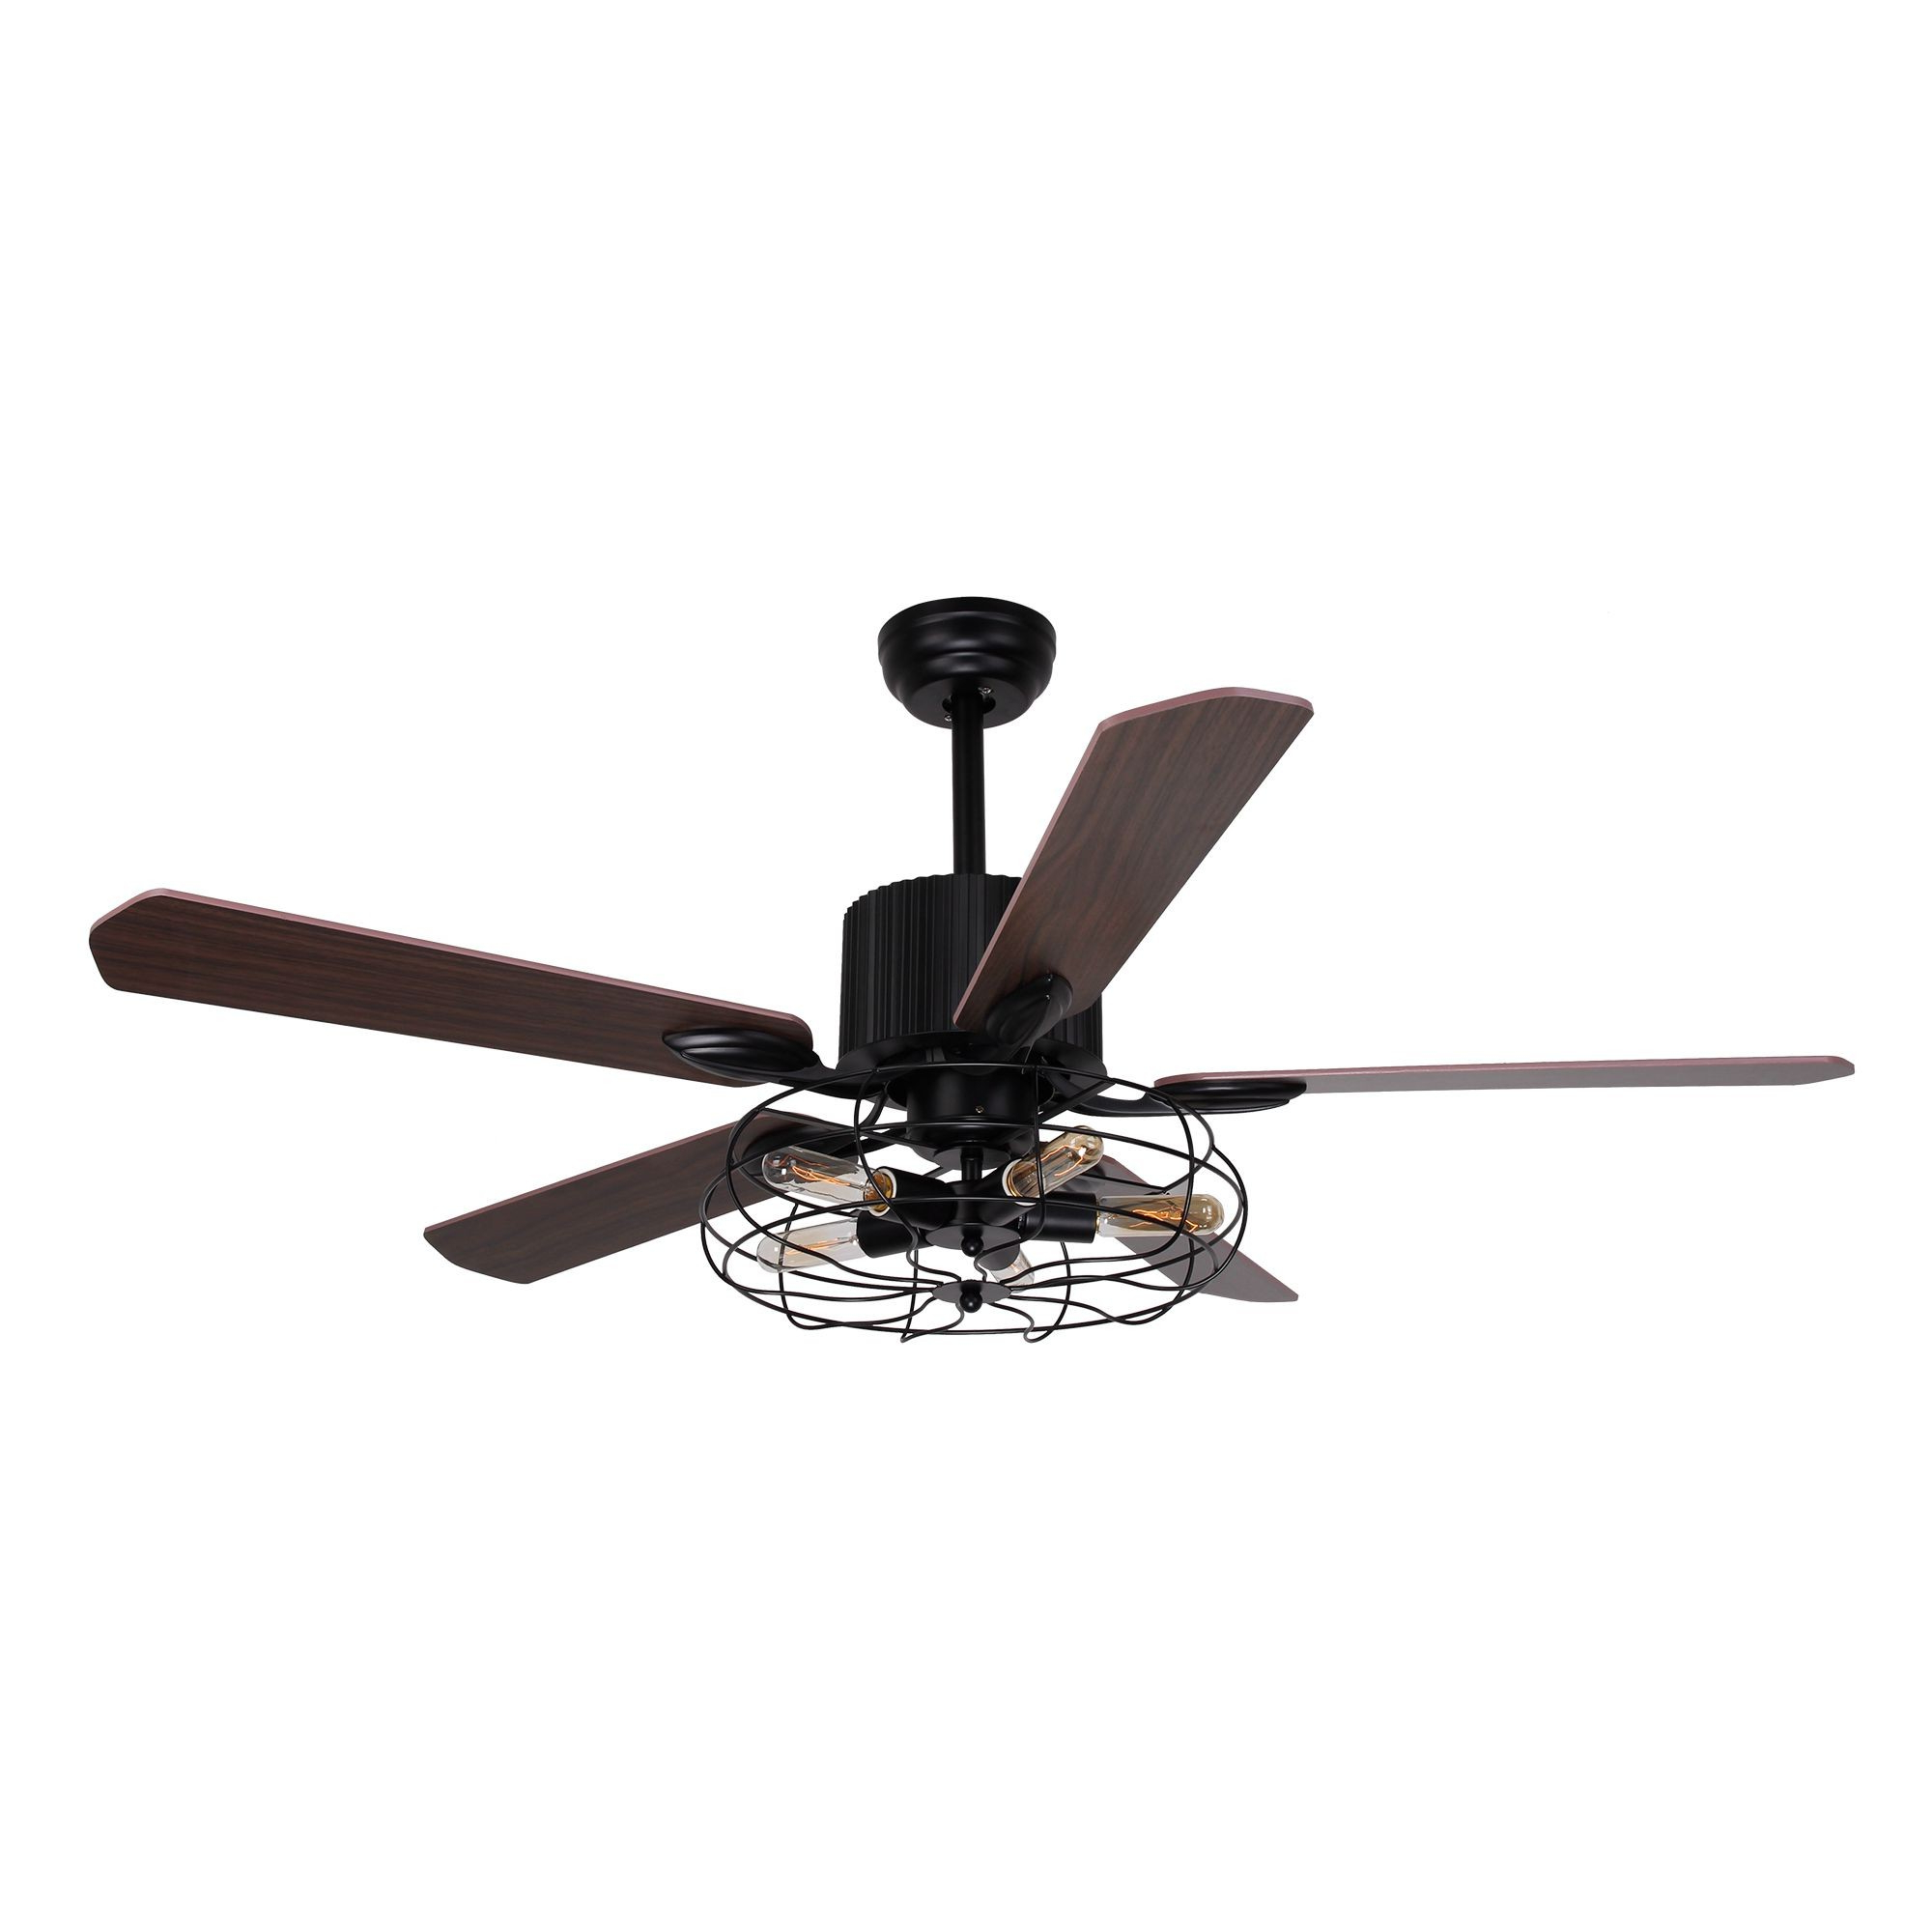 """Famous 52"""" Roberts Industrial Caged Chandelier Ceiling Fan With Light And Remote  Control, 5 Blades, Black With Regard To Roberts 5 Blade Ceiling Fans (View 11 of 20)"""